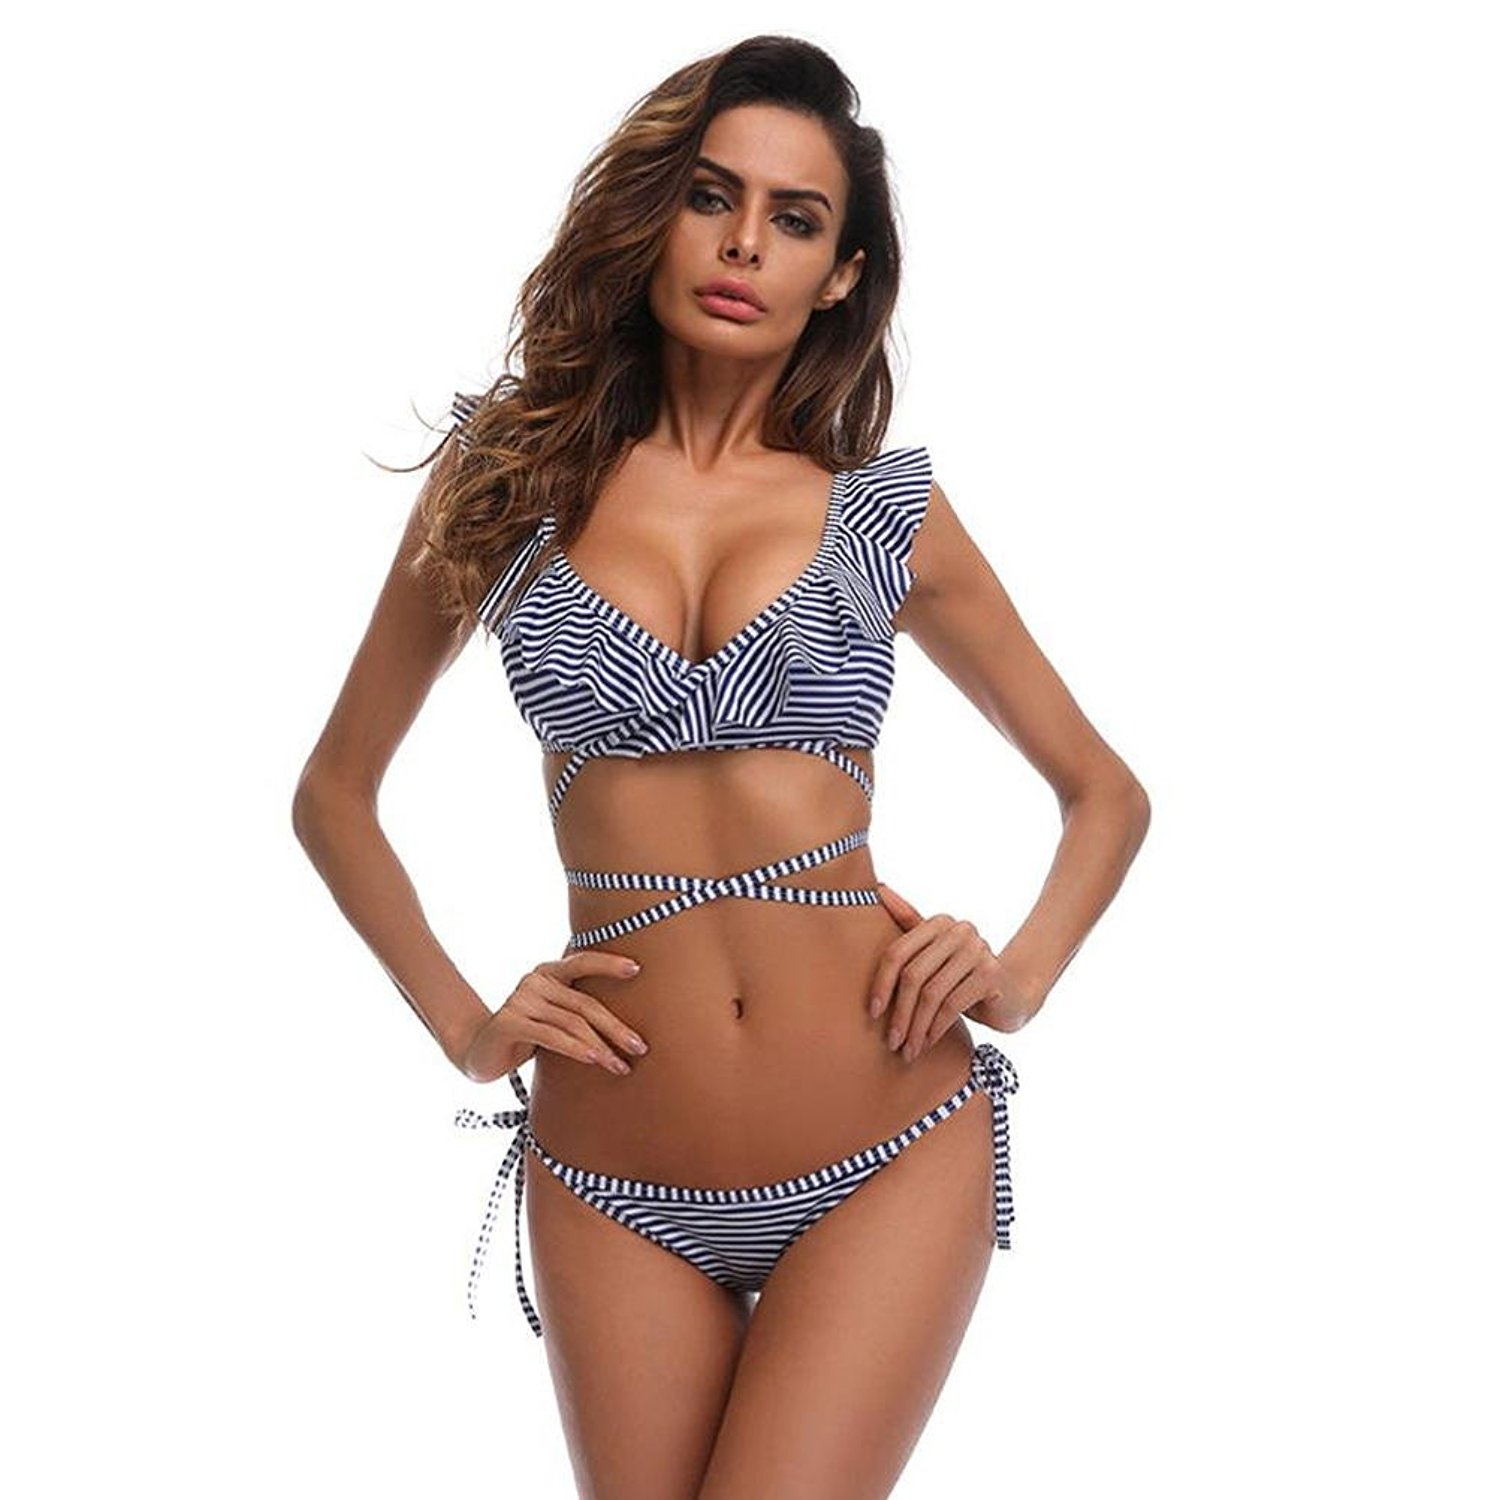 OUBAO Bikini Sets Swimsuits for Women Swimwear Push Up Printed Beachwear Girls Bathing Suits Ladies